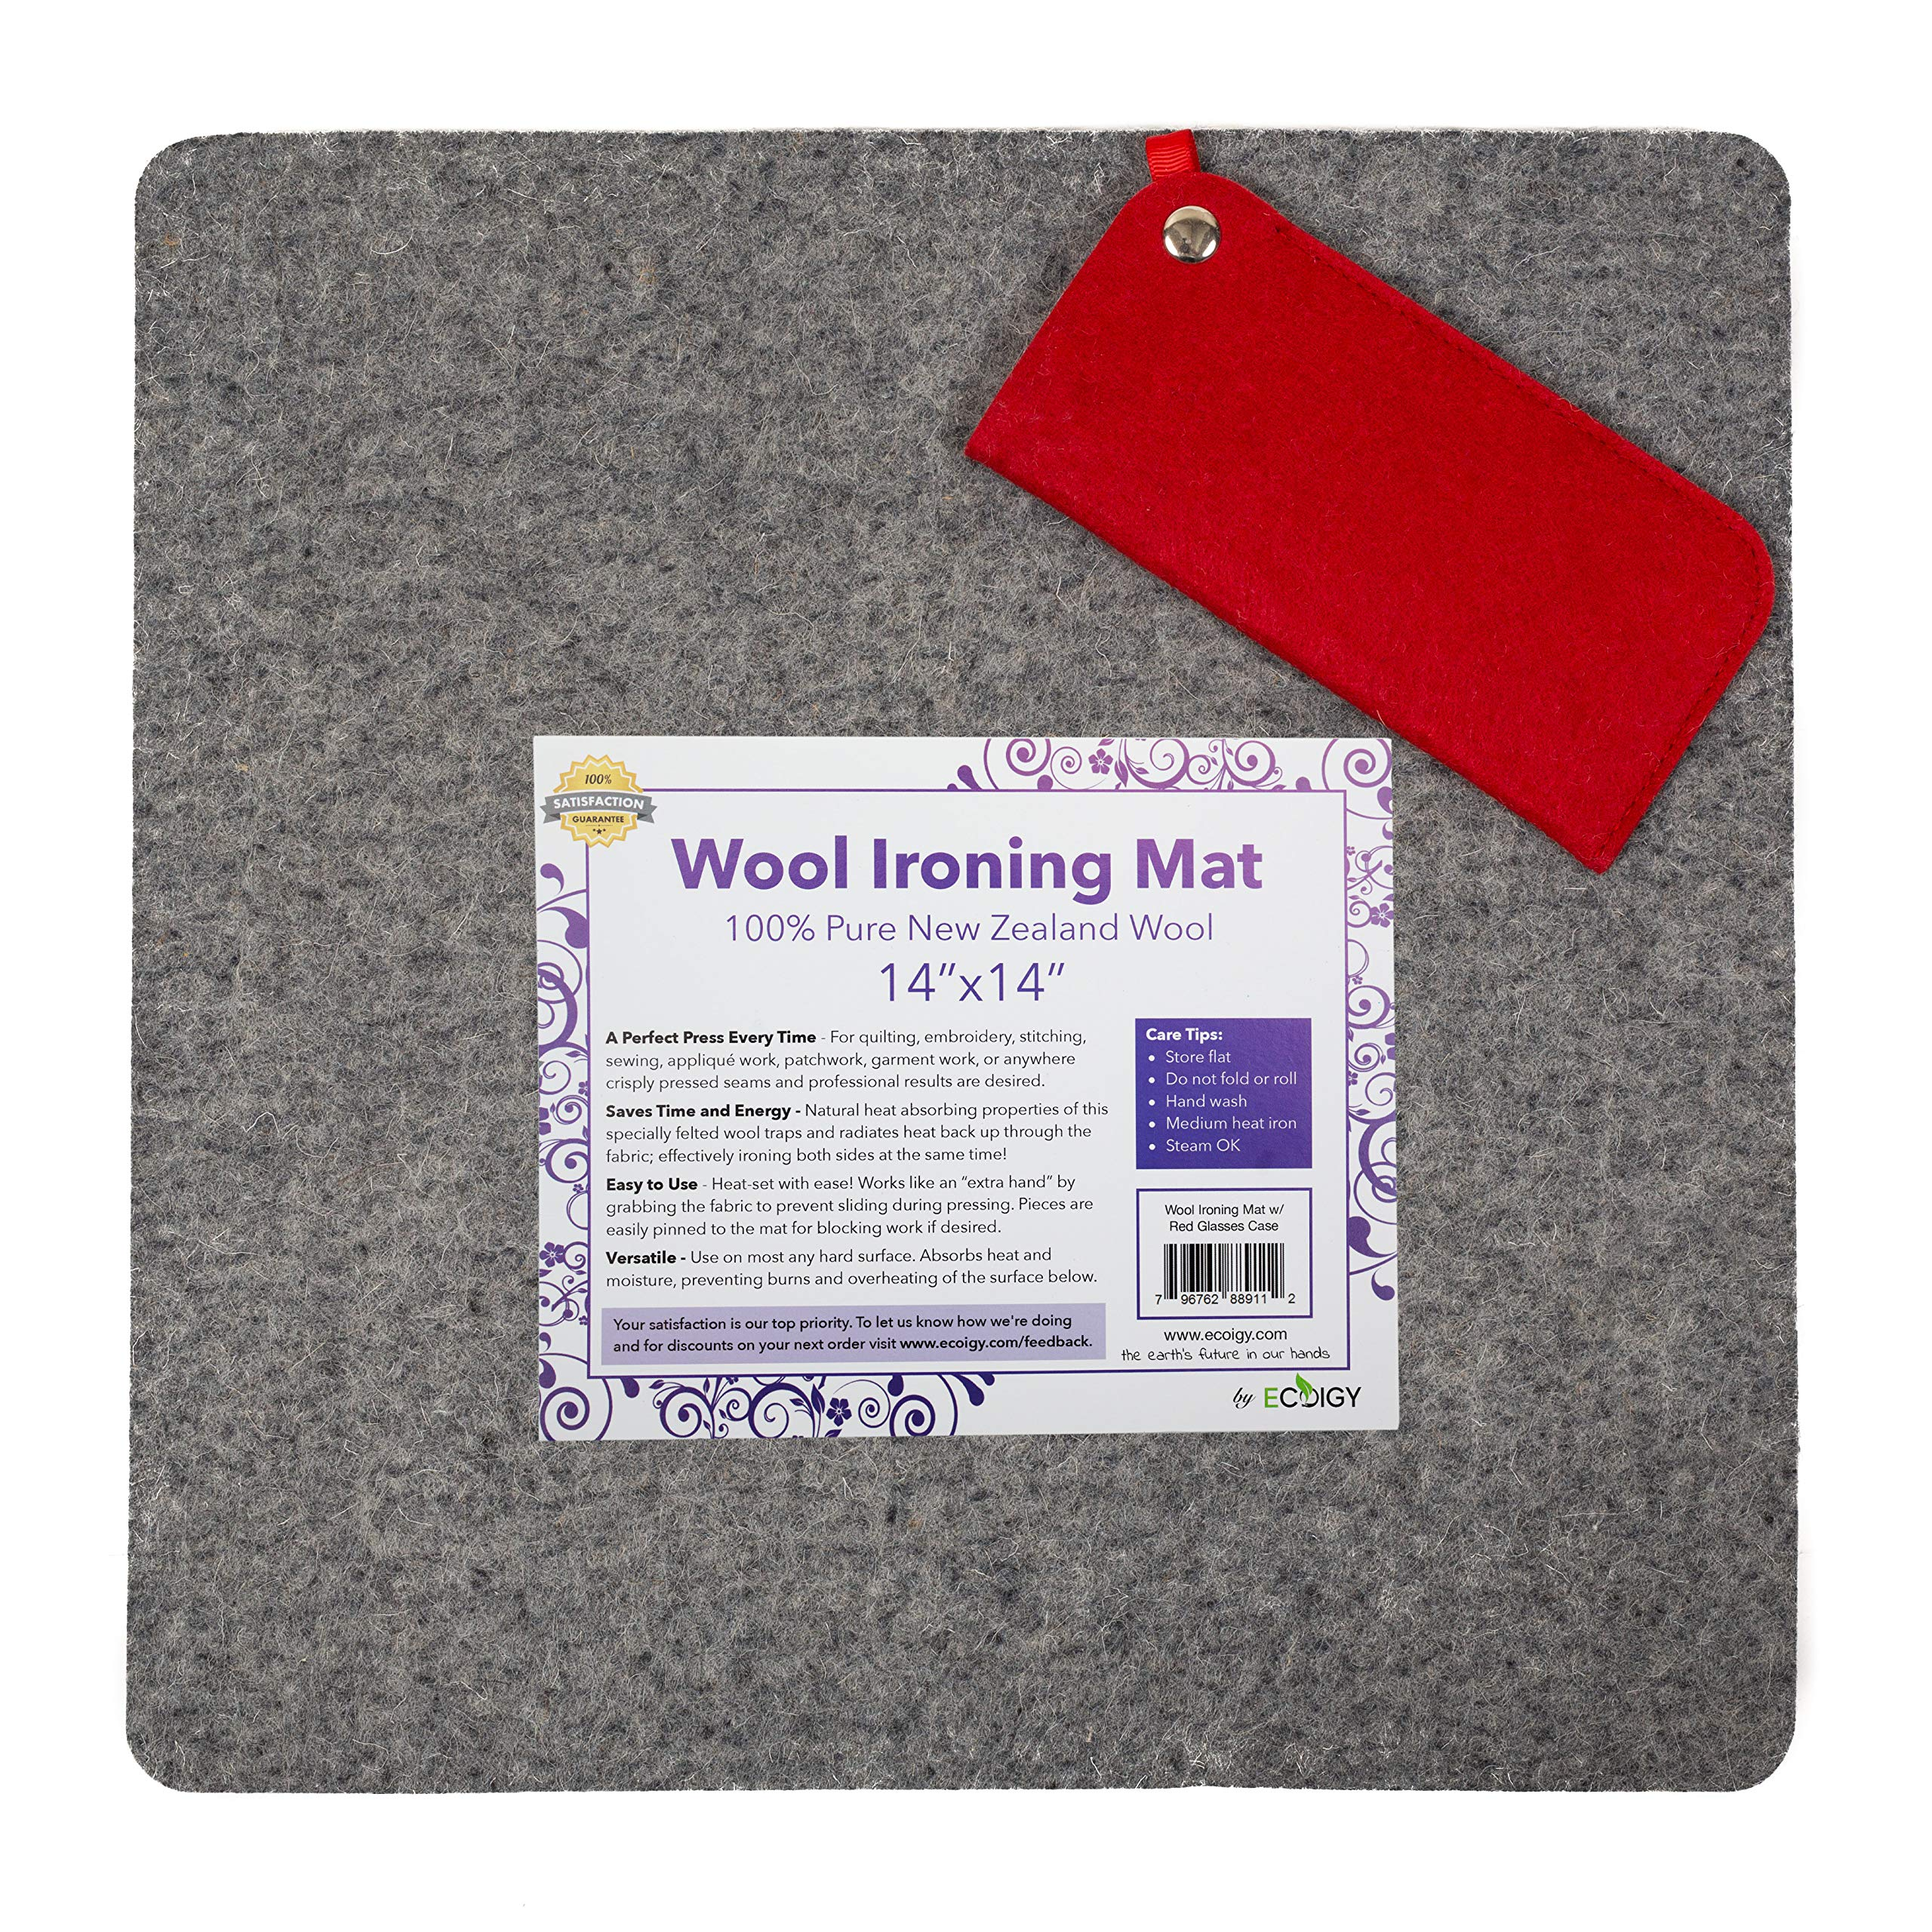 Ecoigy 14'' x 14'' Wool Ironing Pad, 1/2'' Thick Wool Pressing Mat for Quilting, 100% New Zealand Wool Quilting Mat, Quilting Supplies and Notions, Best Ironing Mat with a Bonus Eyeglasses Case by Ecoigy